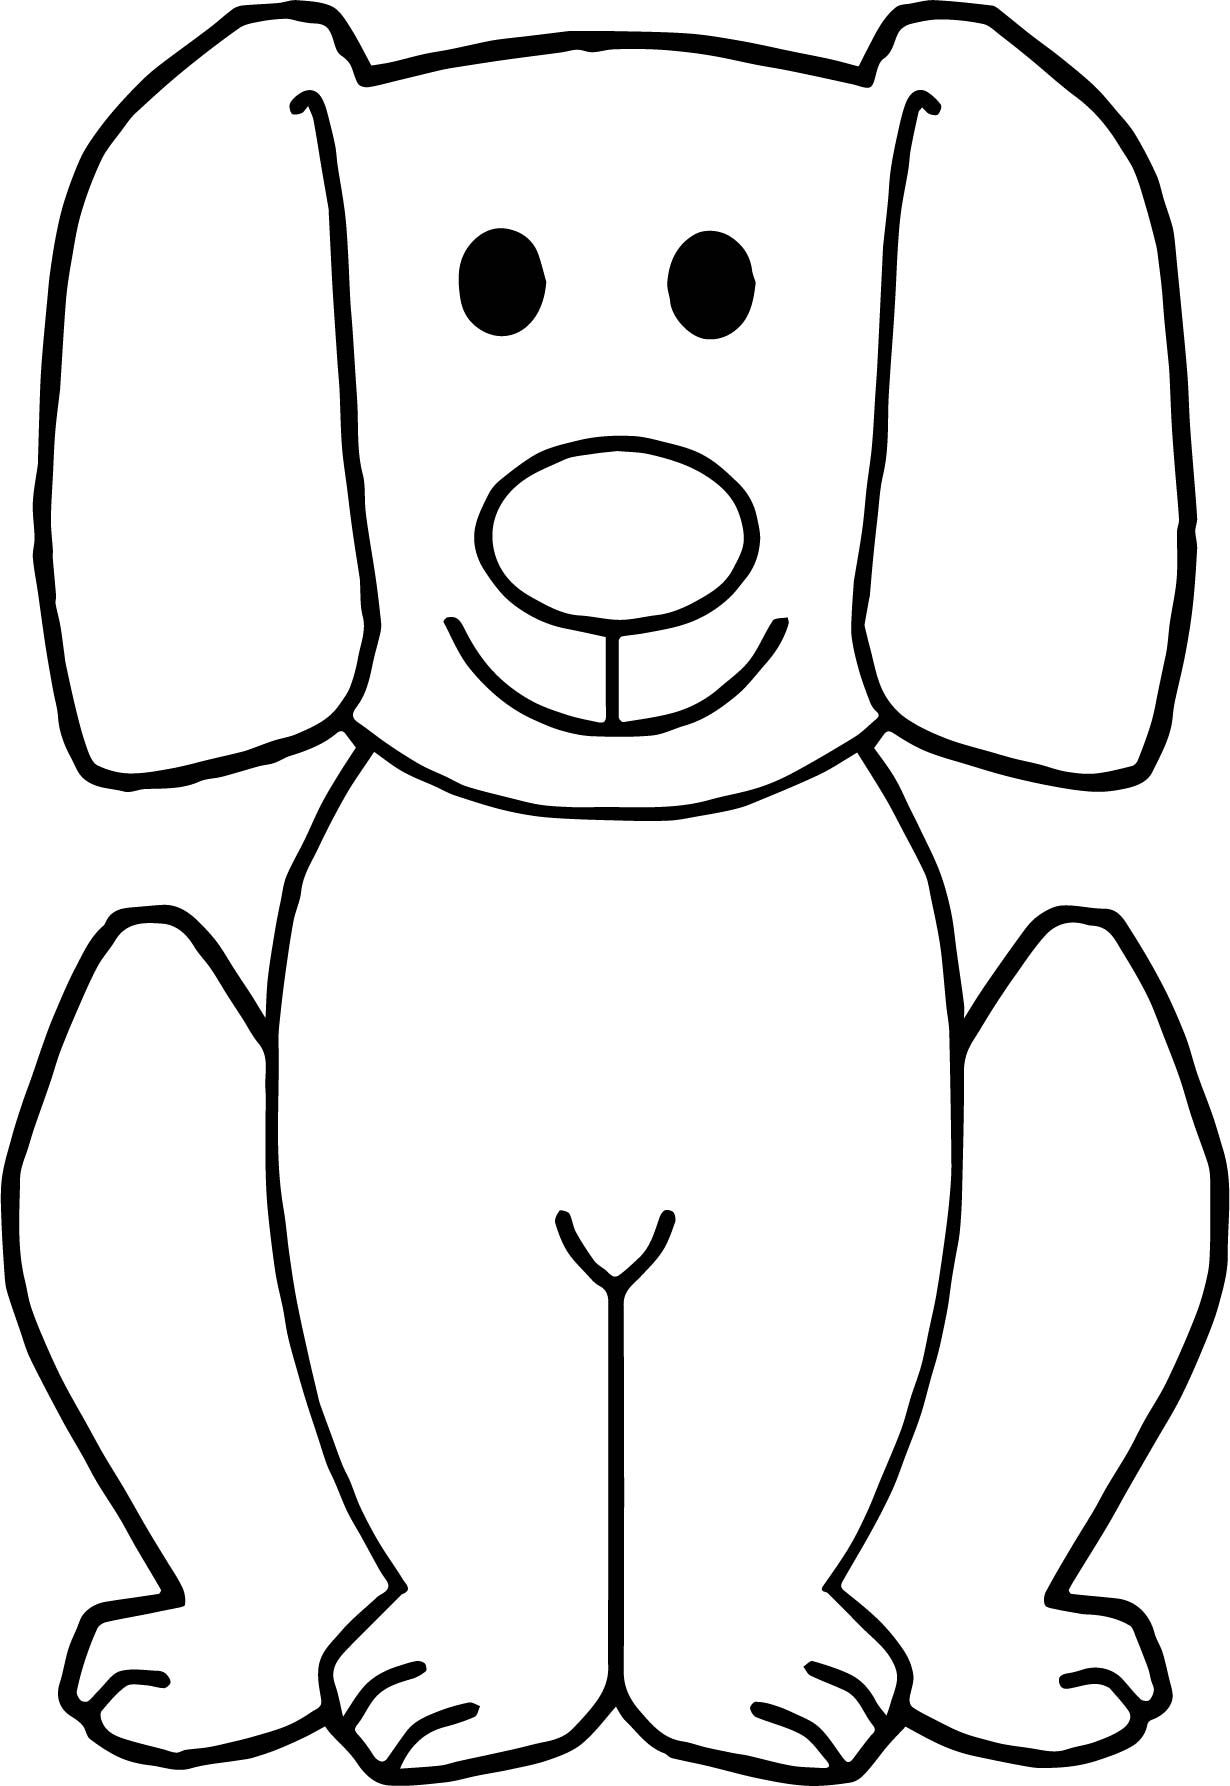 Free Dog Images Puppy Dog Coloring Page Https Cstu Io B2002f